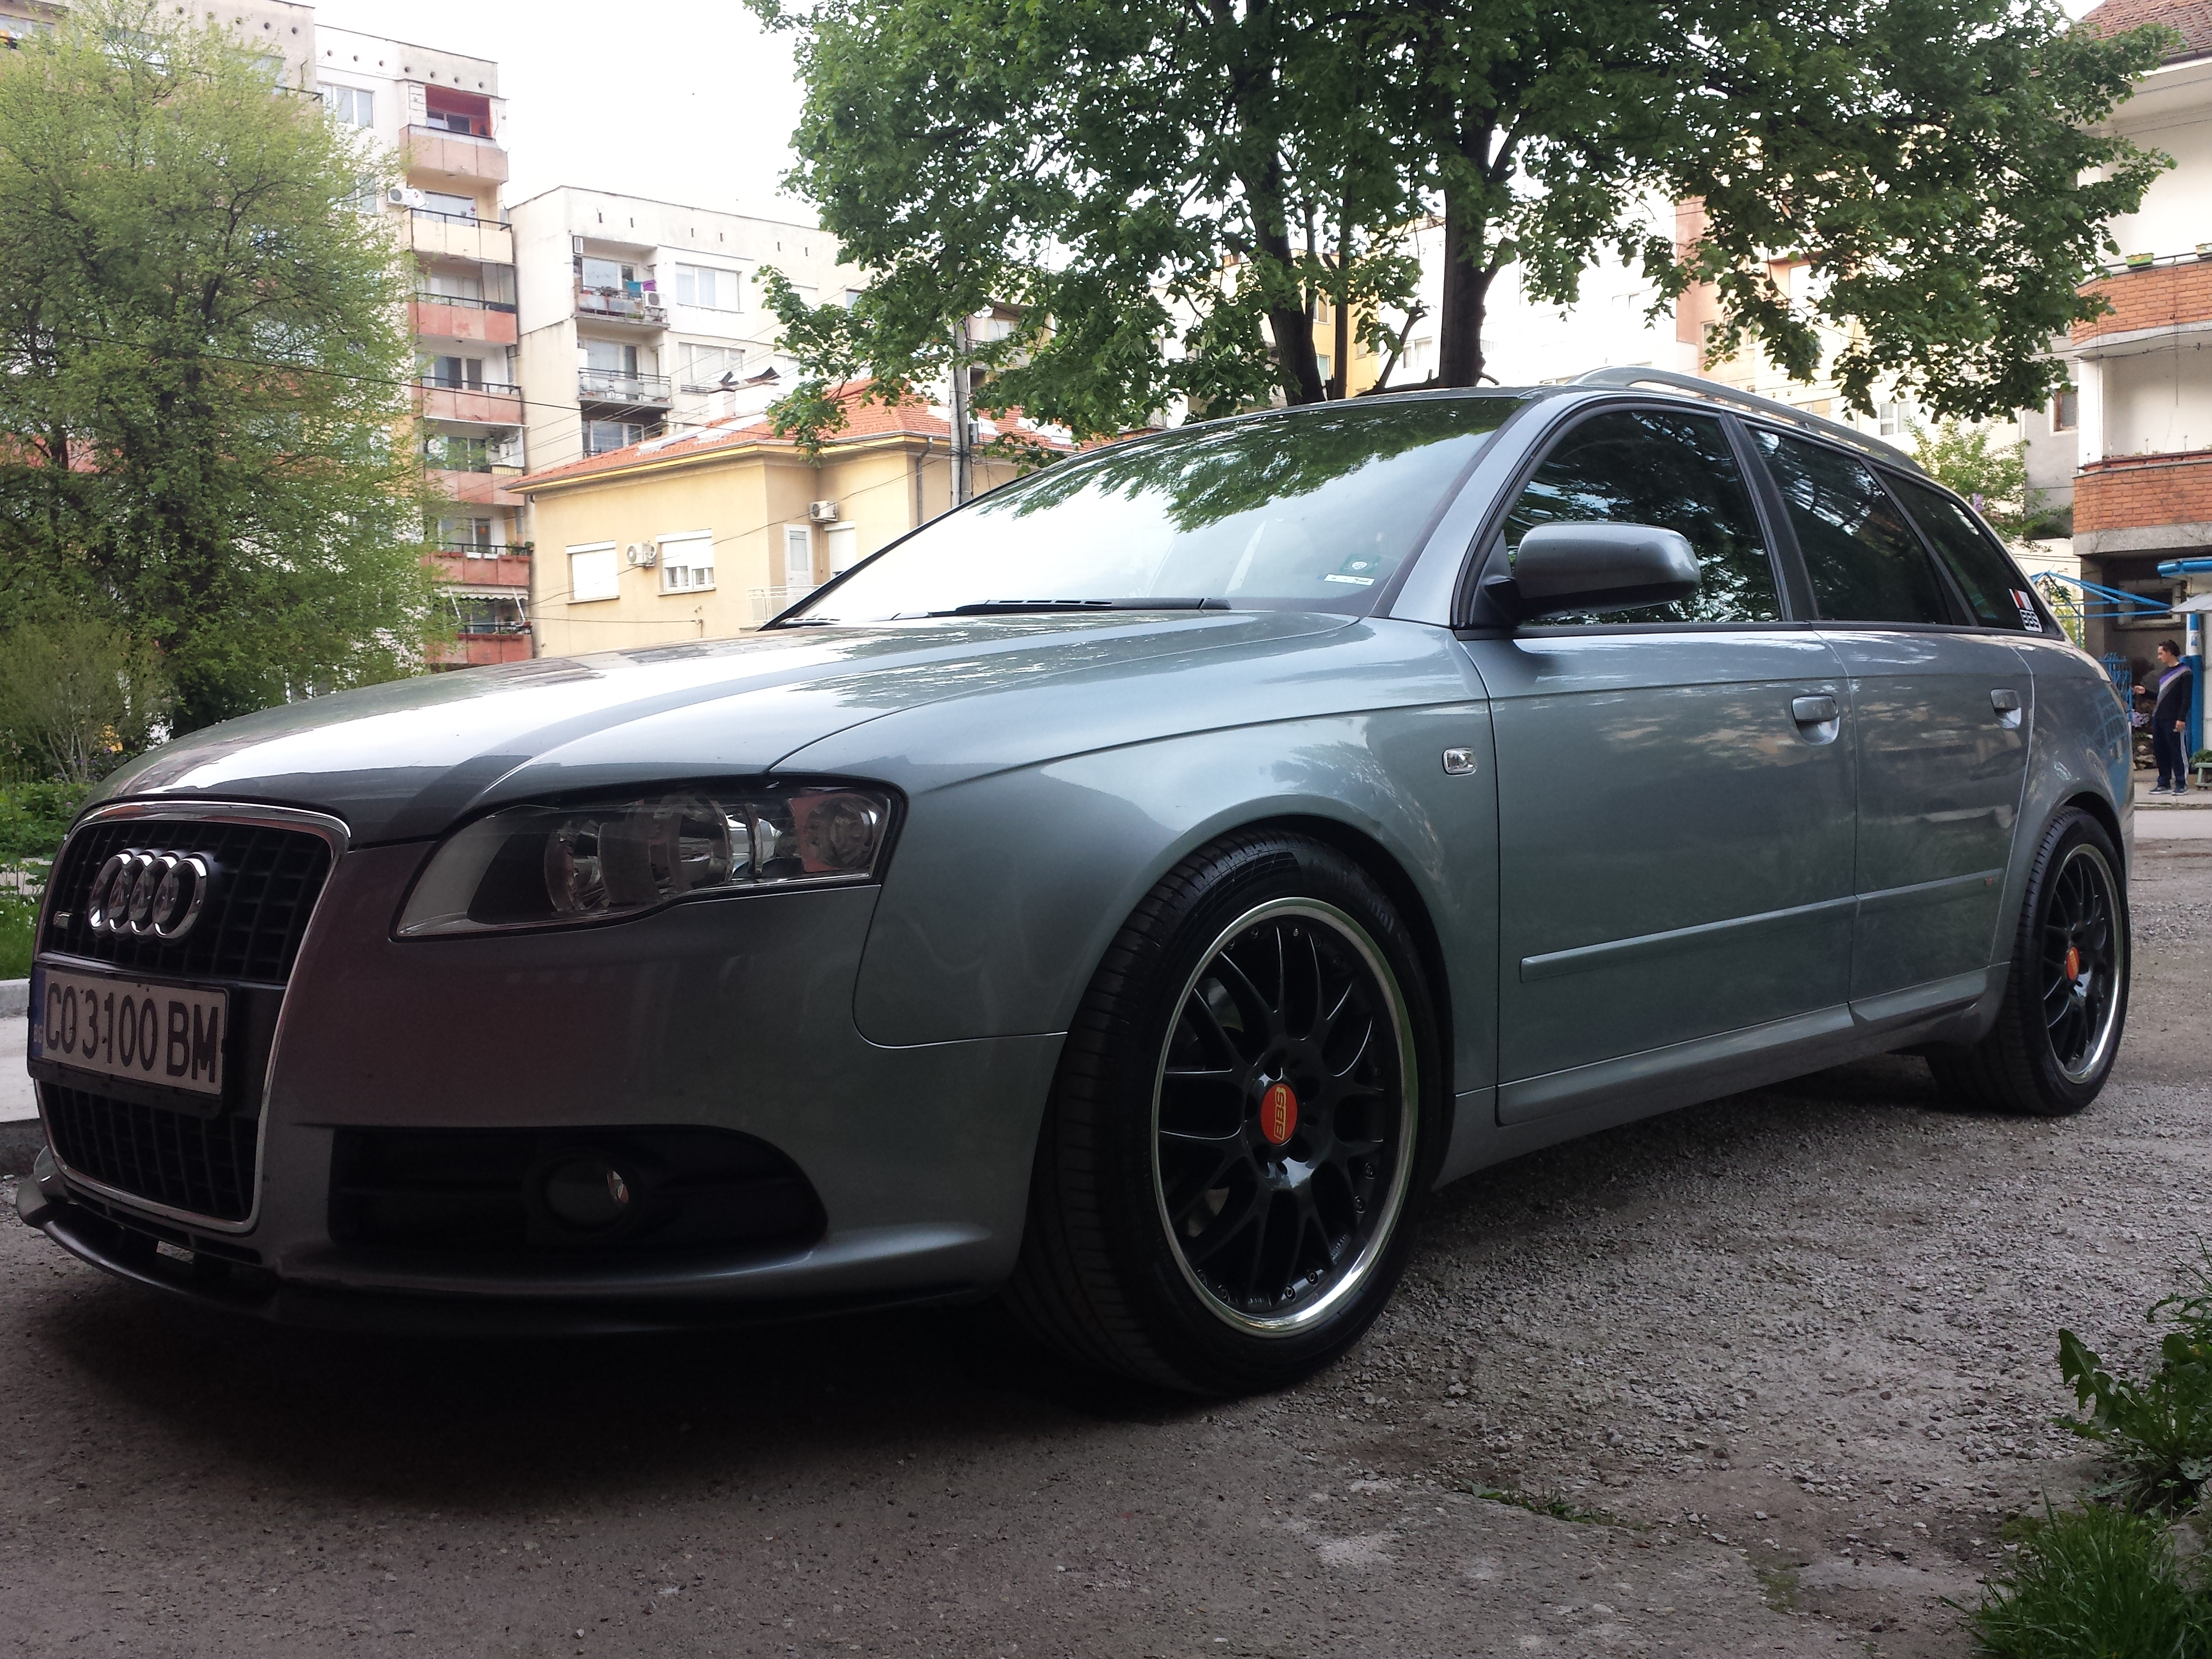 2007 audi a4 b7 avant s line quattro 2 0 tdi 217hp. Black Bedroom Furniture Sets. Home Design Ideas